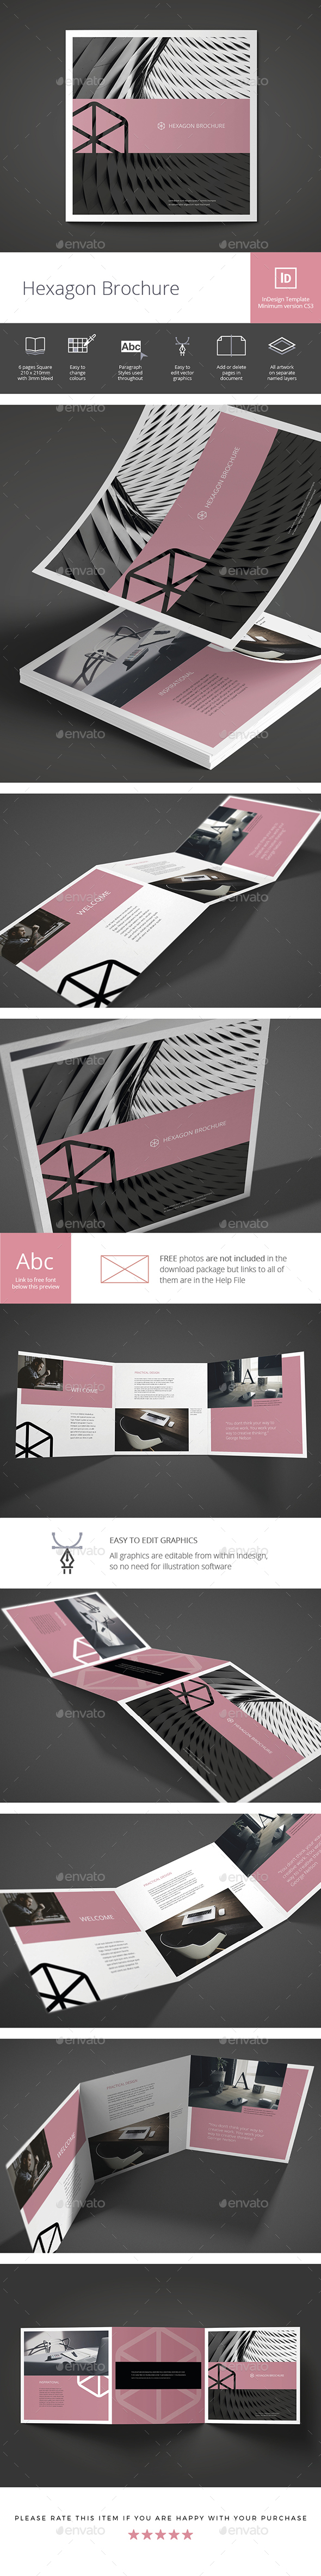 Square Hexagon Brochure - Brochures Print Templates